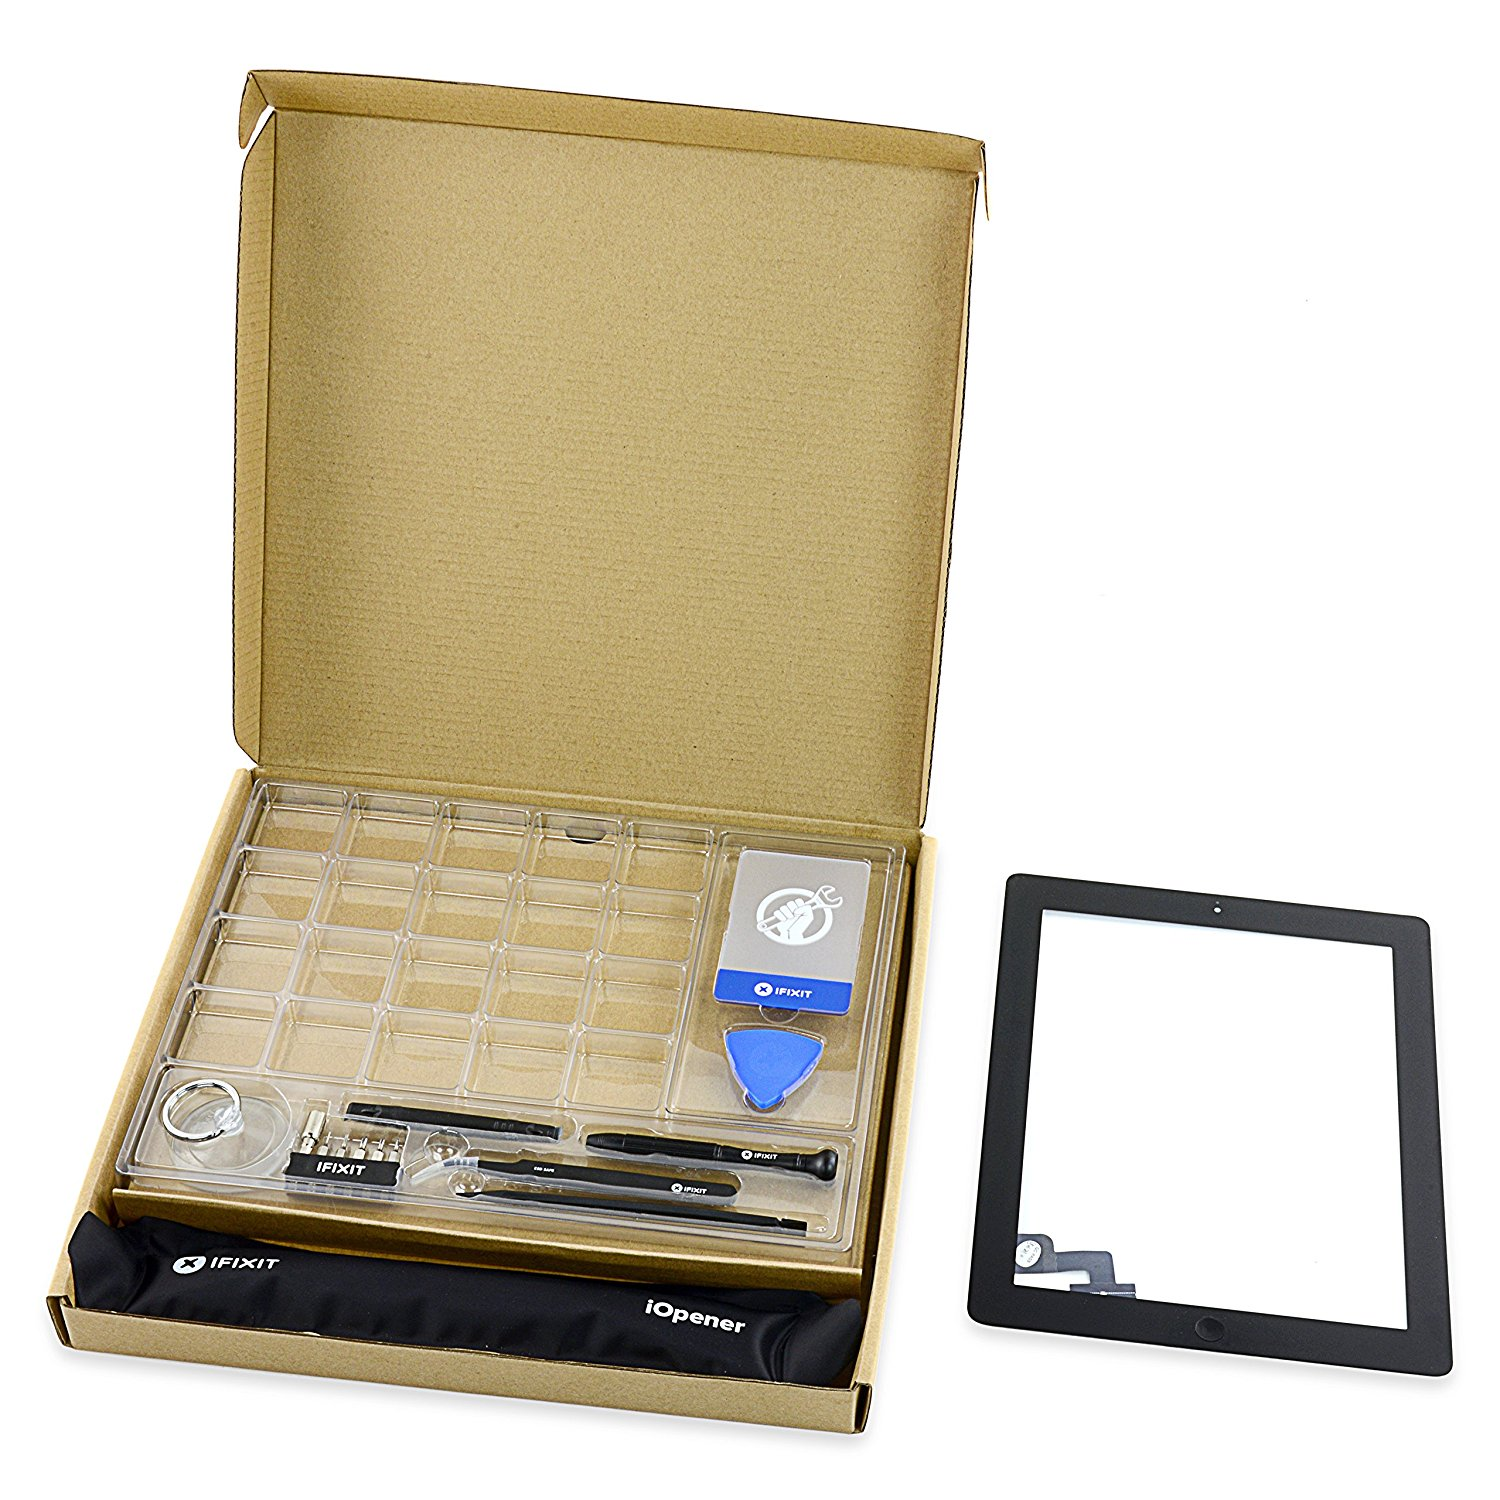 iPad 2 Front Glass/Digitizer Touch Panel Full Assembly - Black